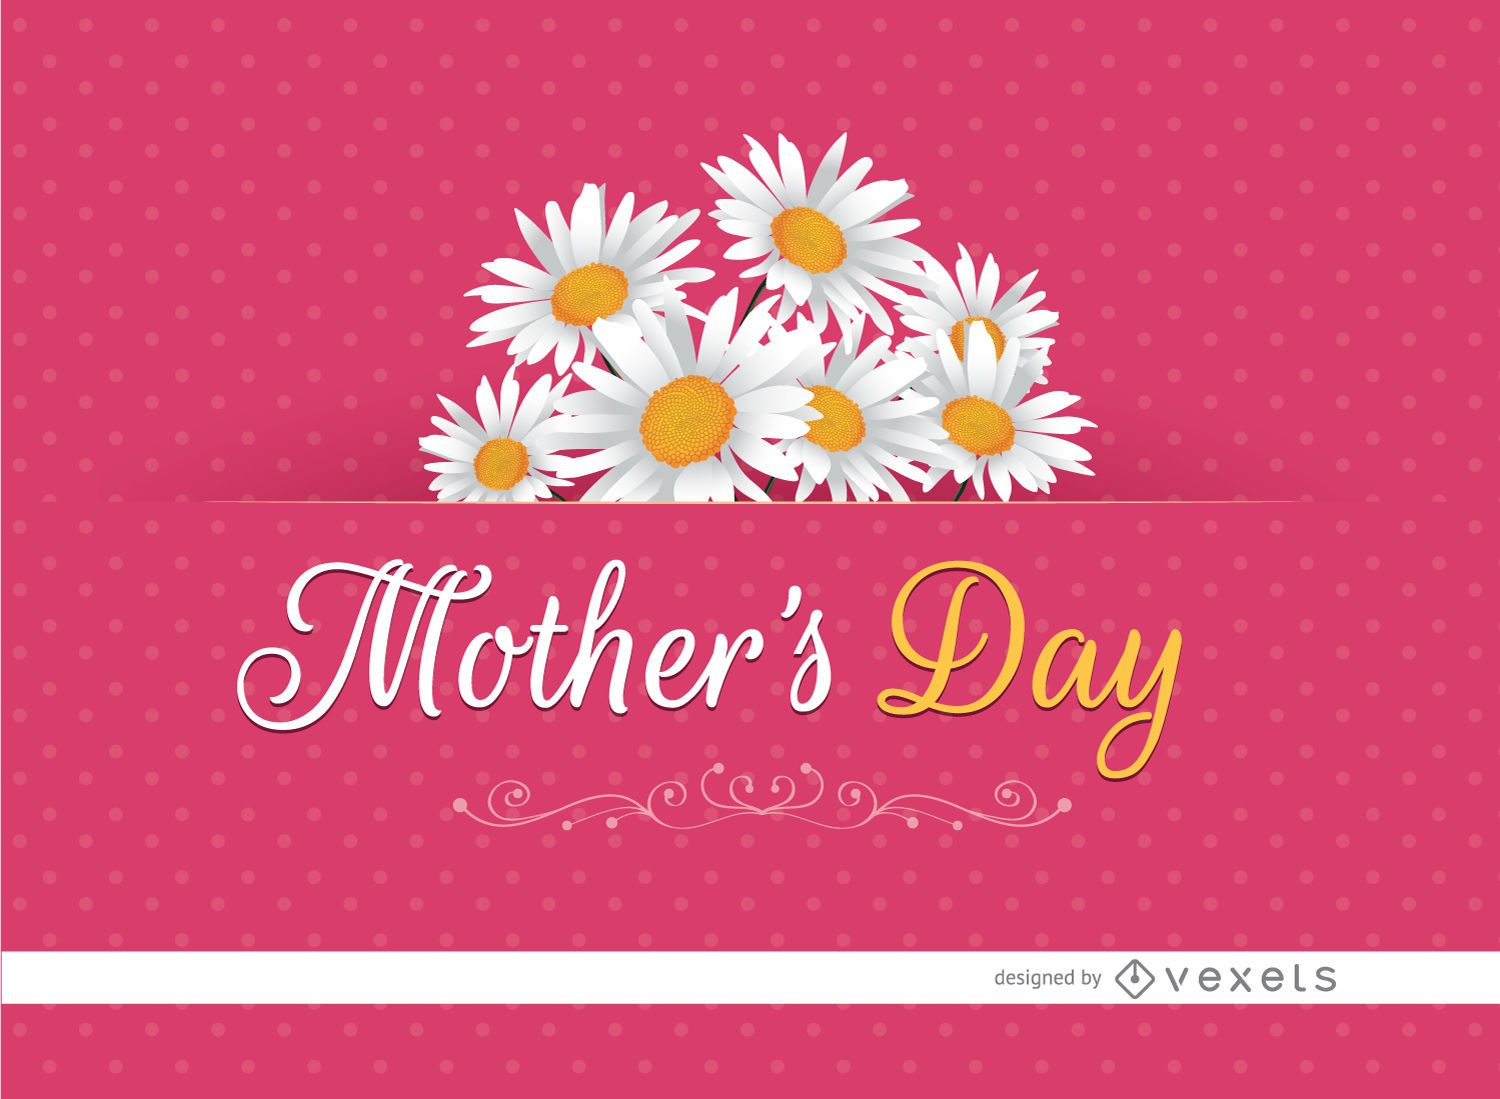 Mother?s Day card daisies